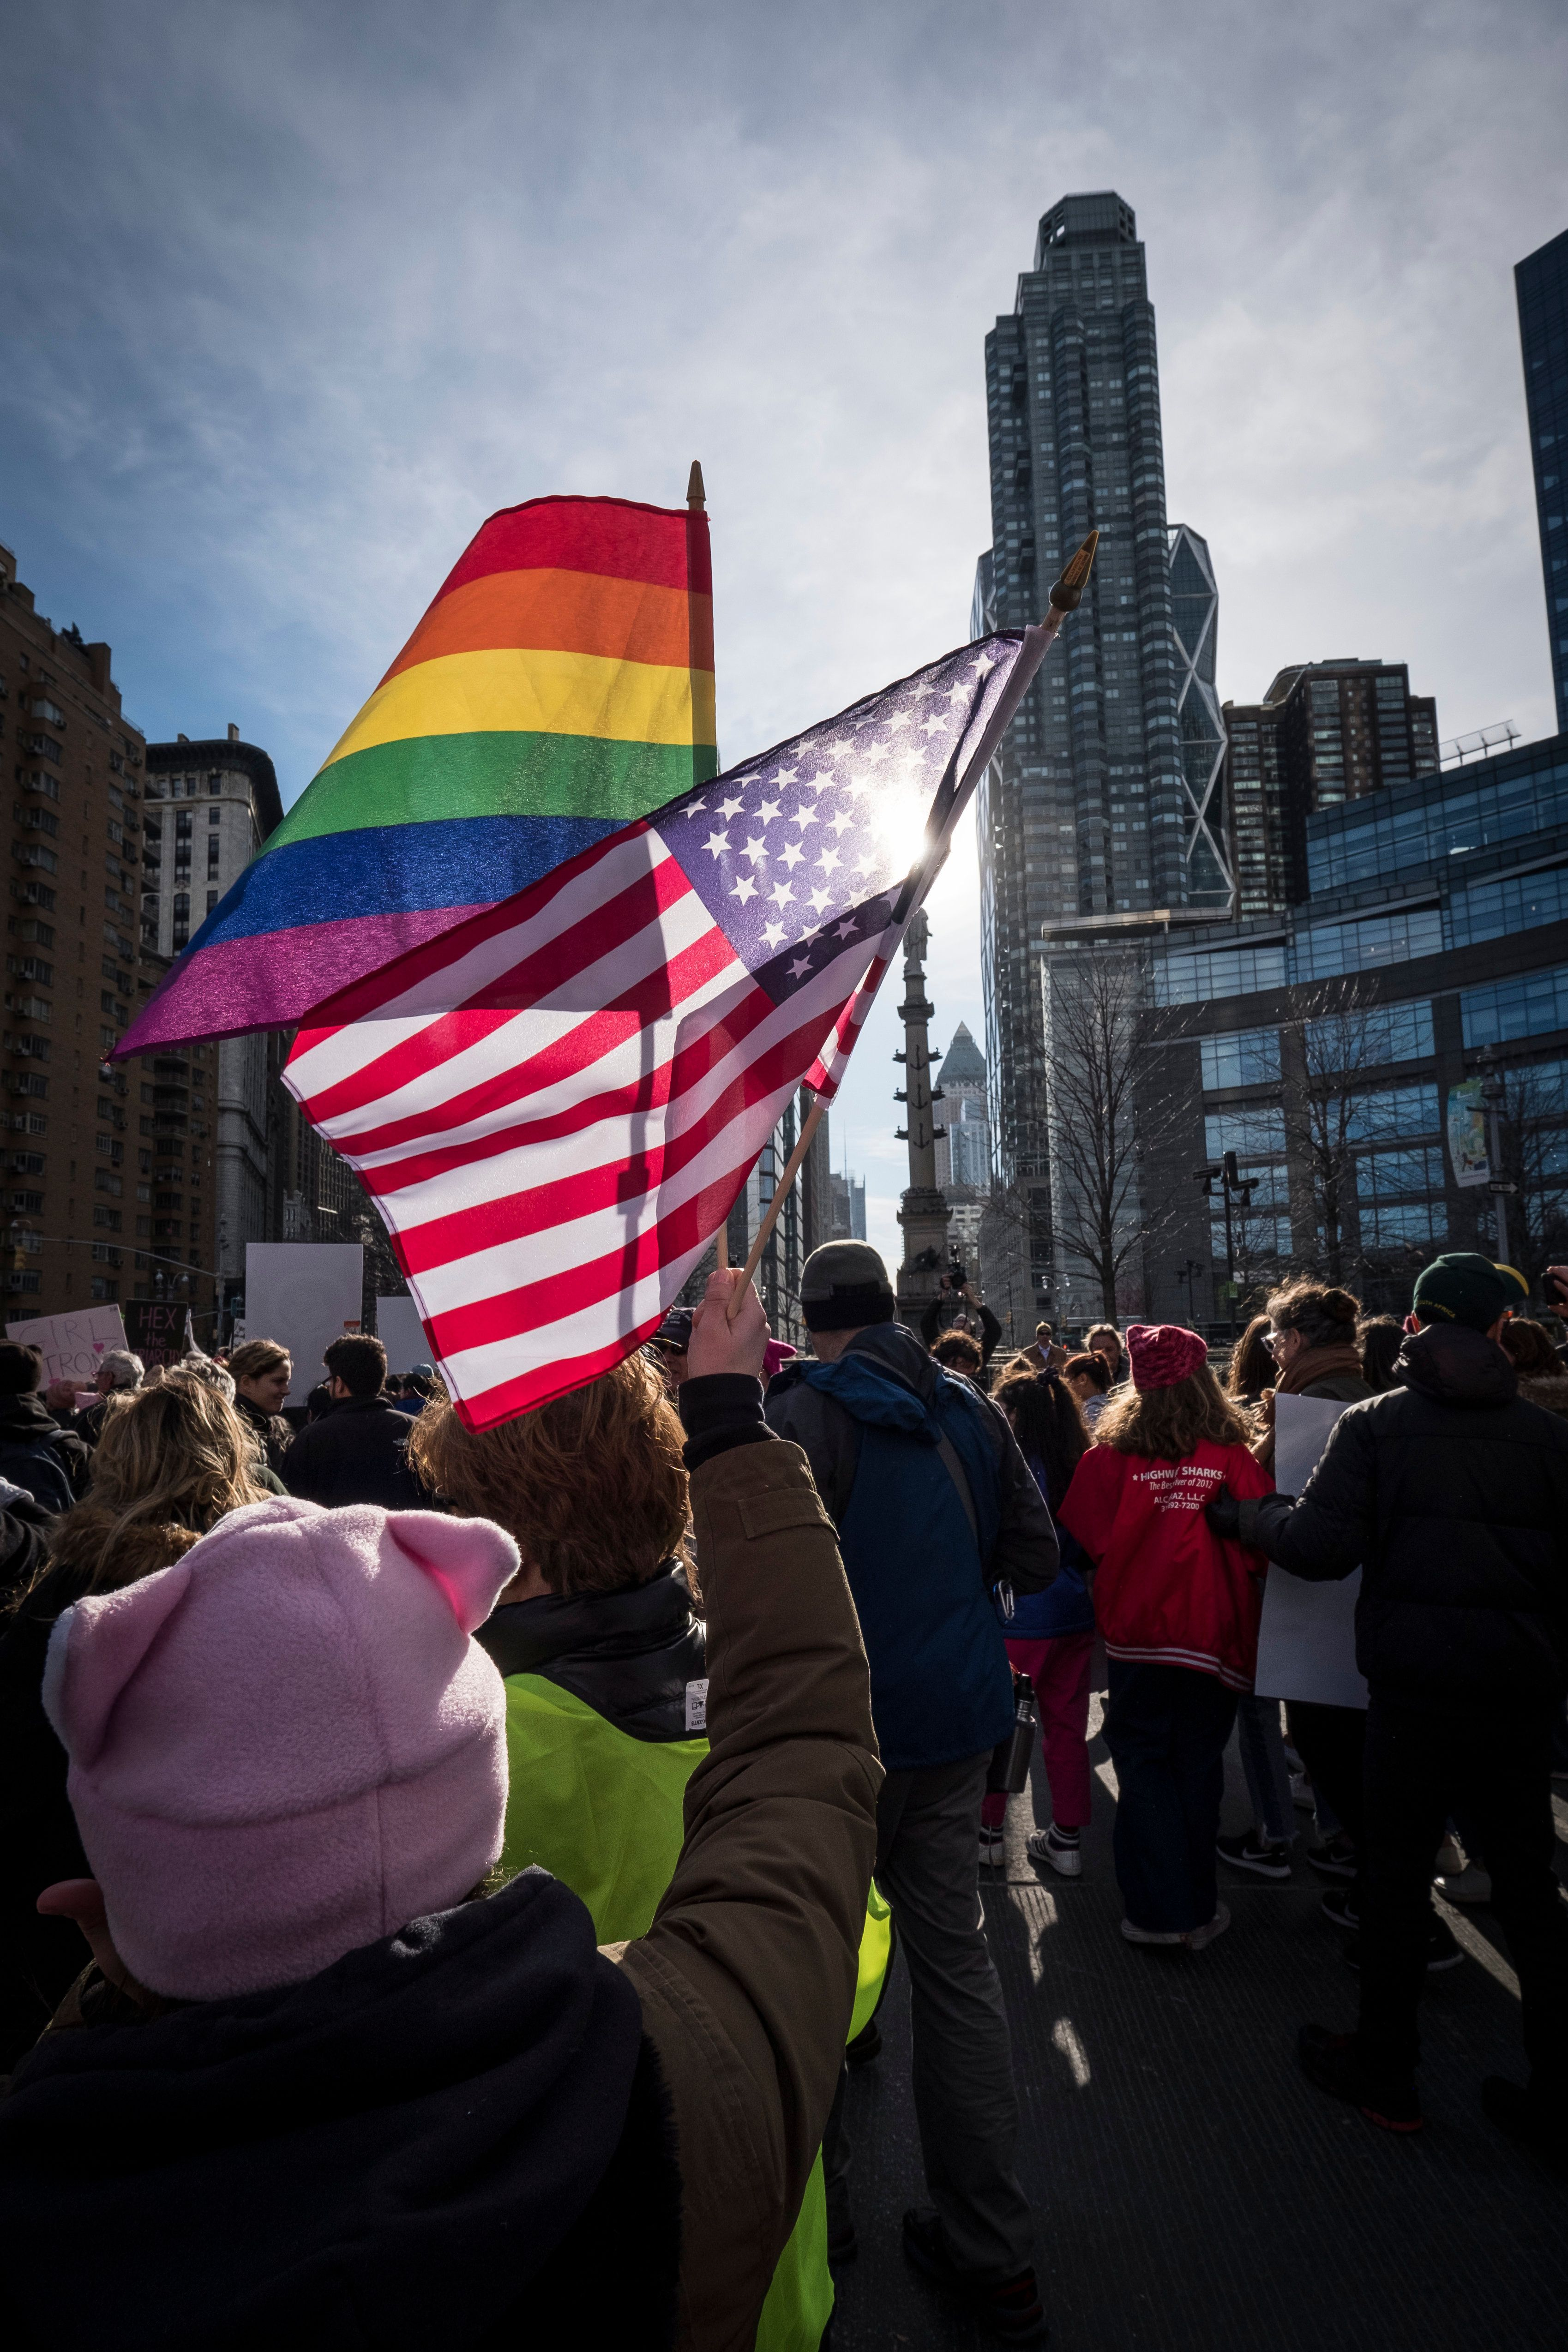 NEW YORK, NY - JANUARY 20: A demonstrator holds up a  the American Flag and a Gay Pride Flag in front of Trump International Hotel and Tower during the second annual Women's March in the borough of Manhattan in New York City, U.S. on Saturday, January 20, 2018.  One year after the inauguration of President Donald Trump, thousands of people will again gather to protest for equal rights at the 2018 Women's March.  (Photo by Ira L. Black/Corbis via Getty Images)